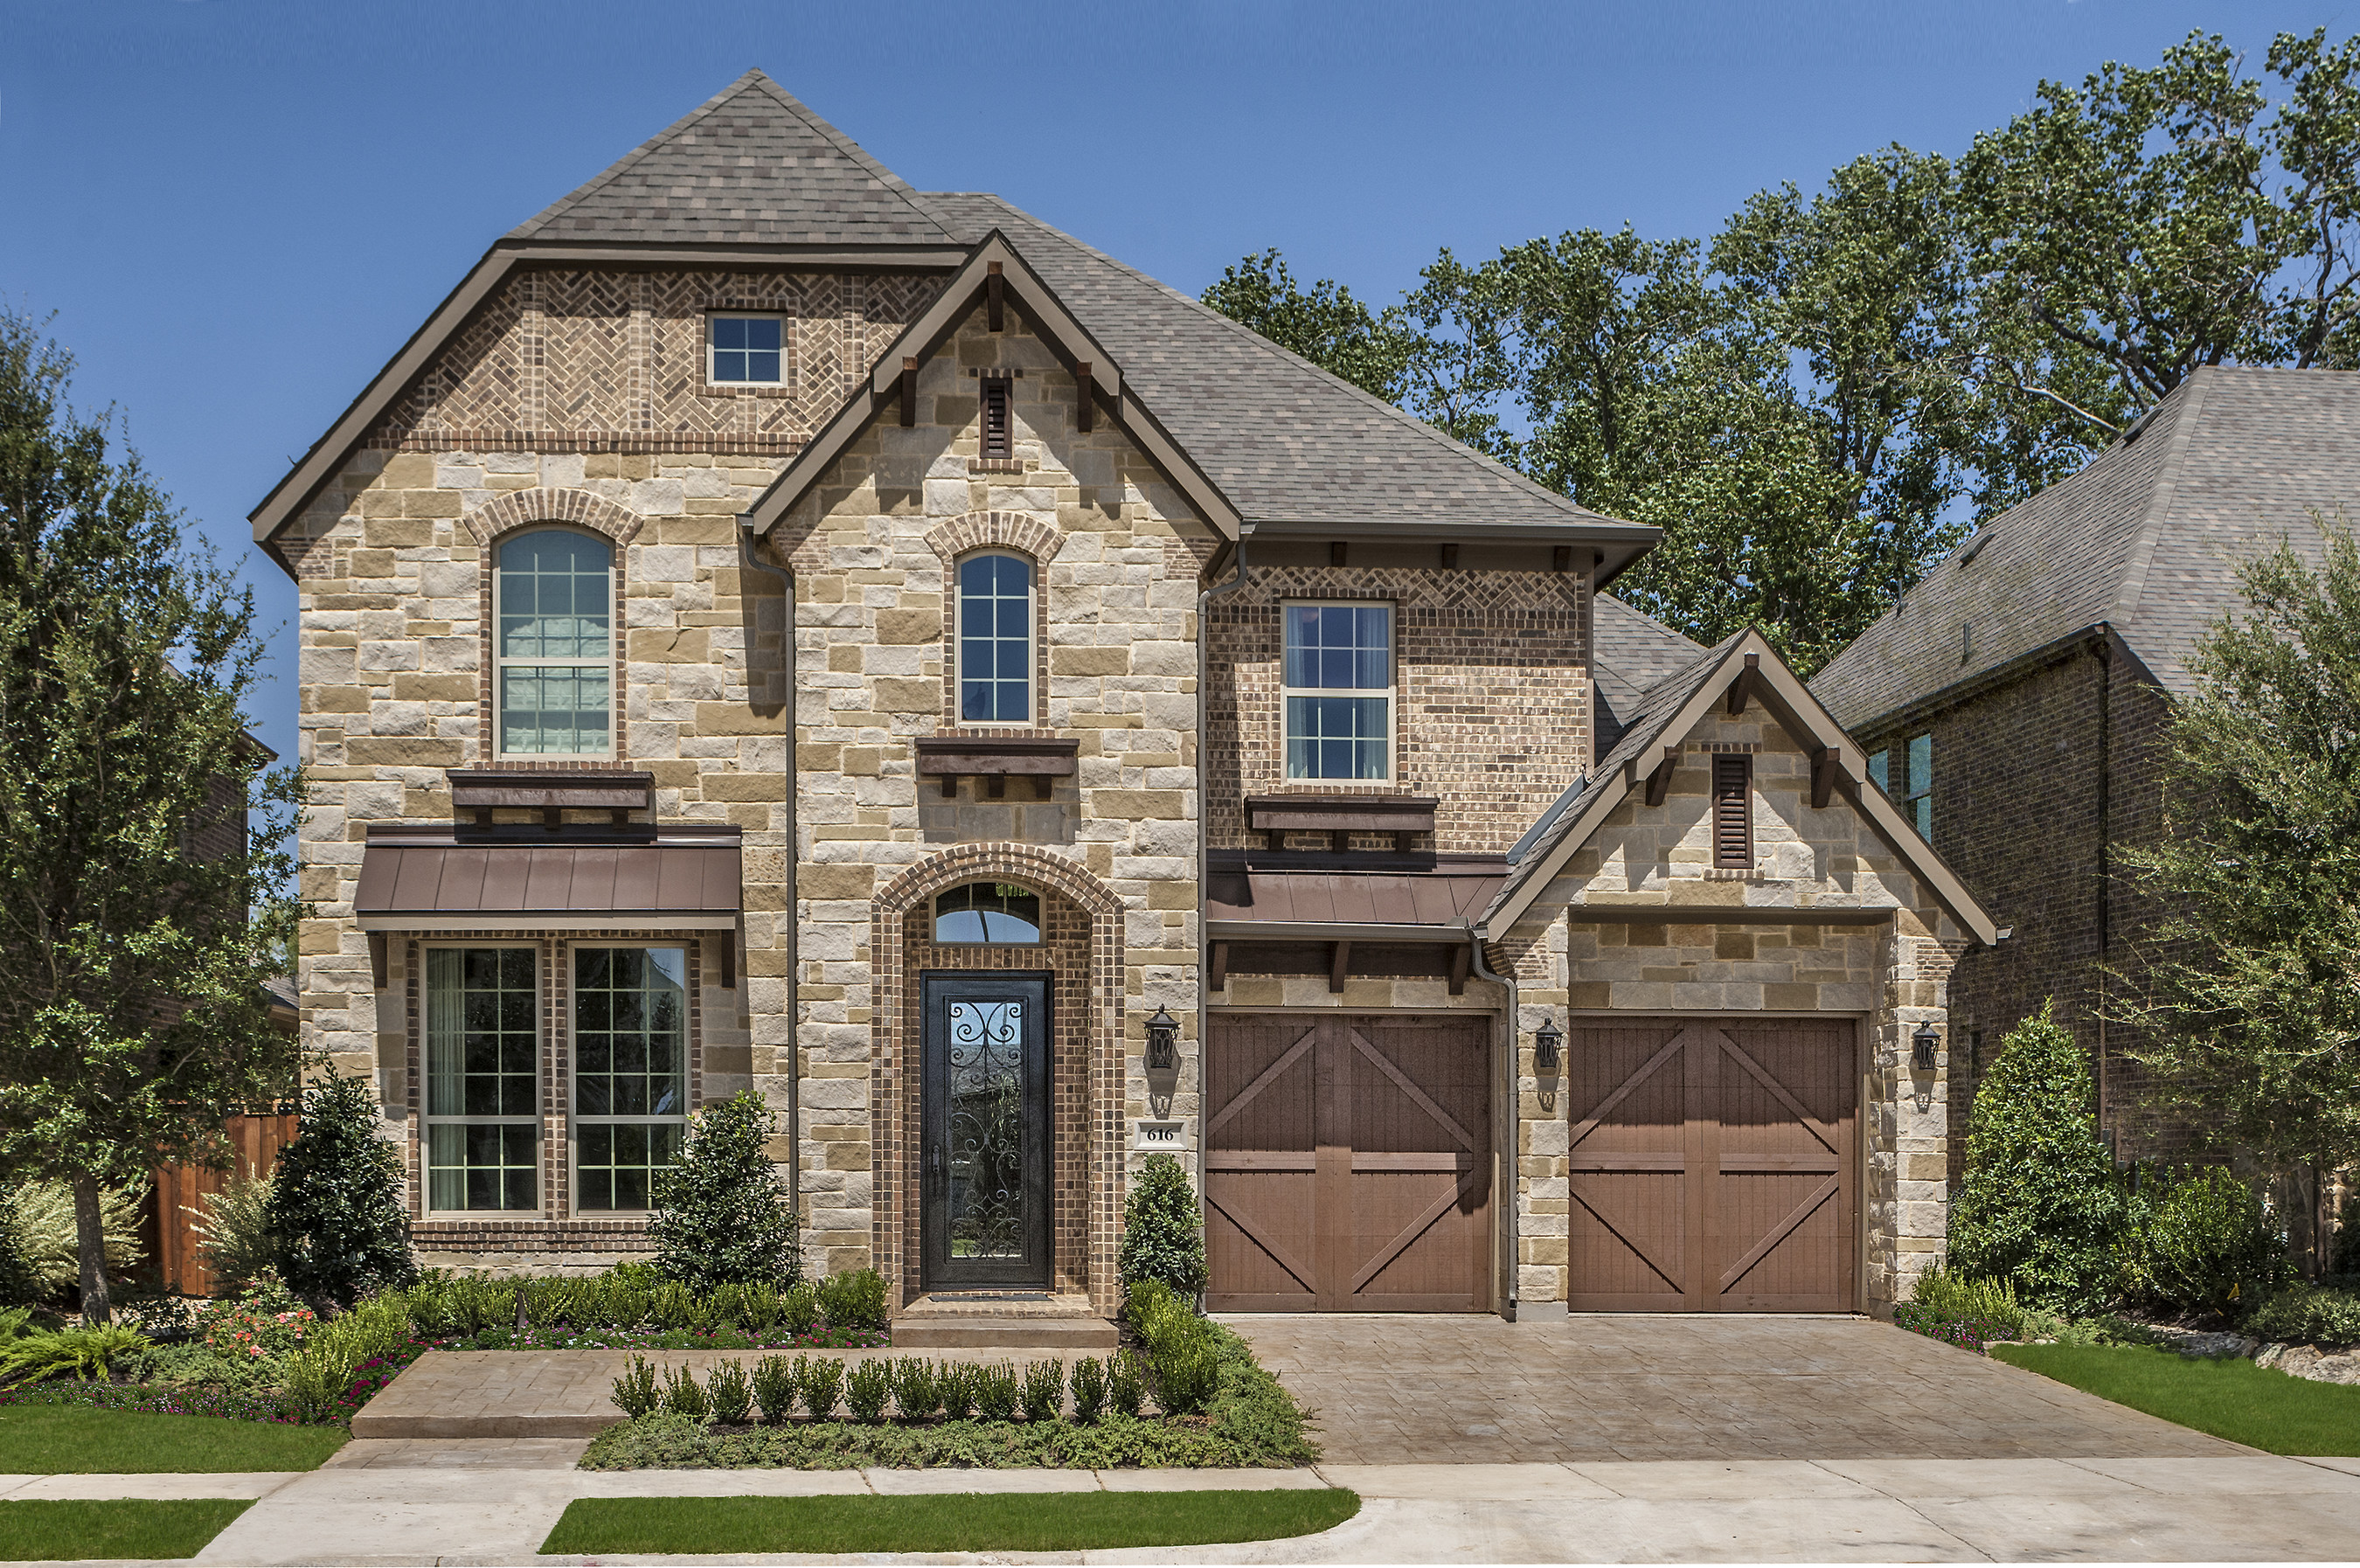 Standard Pacific Homes Offers New Home Designs In Coppell